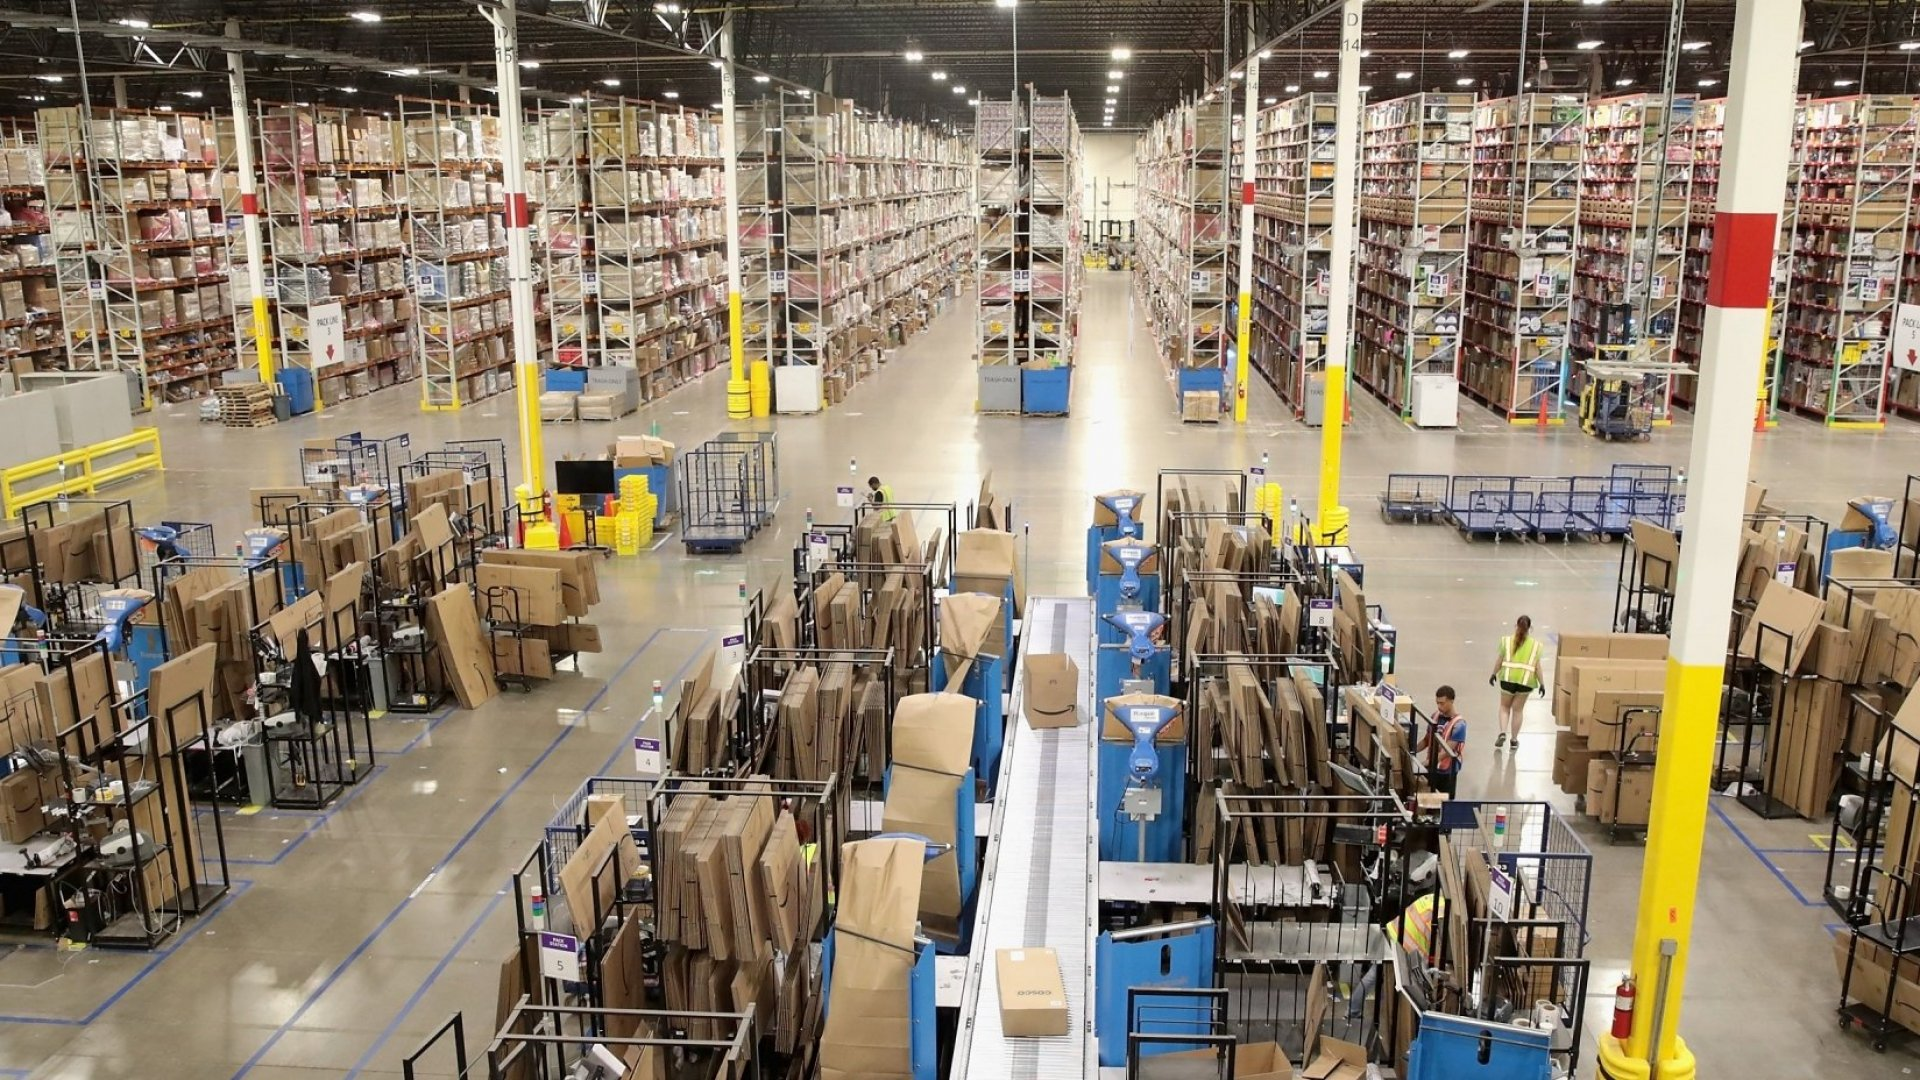 Amazon Is Hiring 100,000 Workers to Handle the Increase in Online Shopping